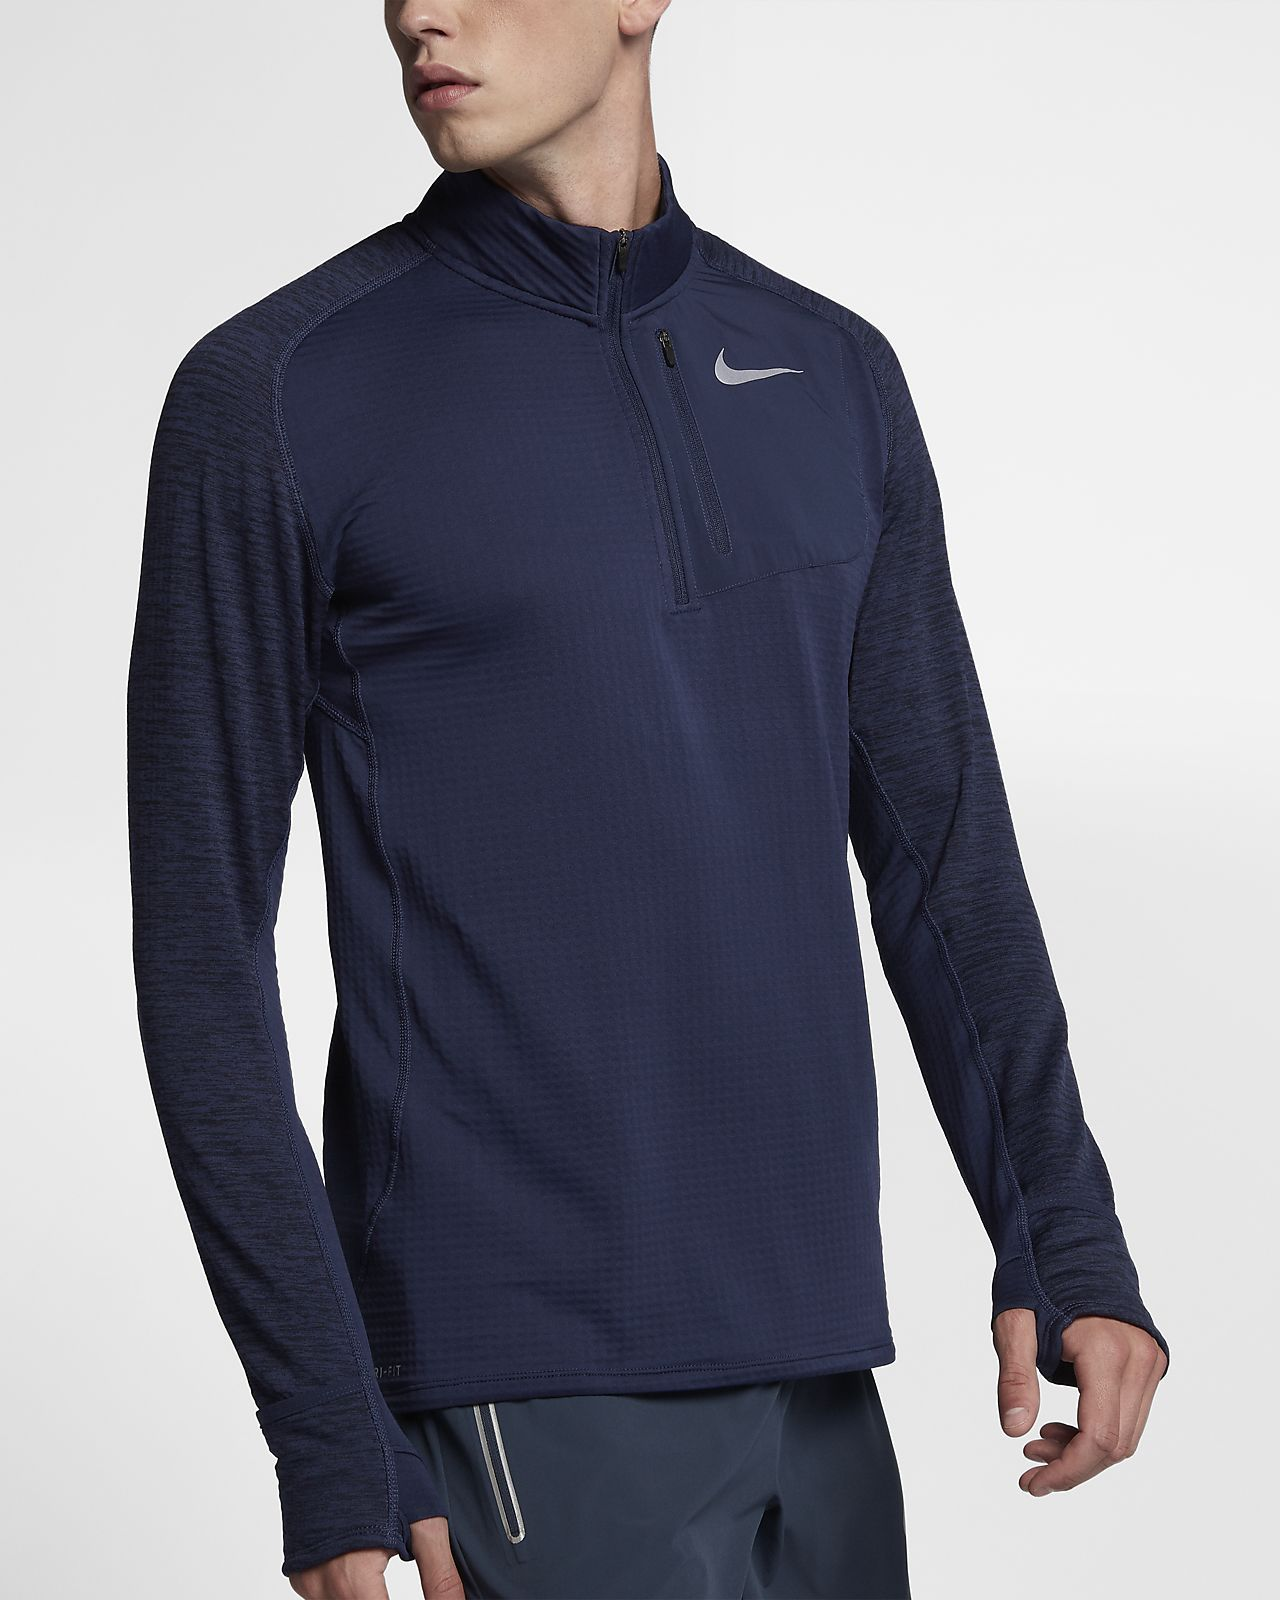 2e8b42aa Nike Therma Sphere Element Men's Long Sleeve Half-Zip Running Top Size M